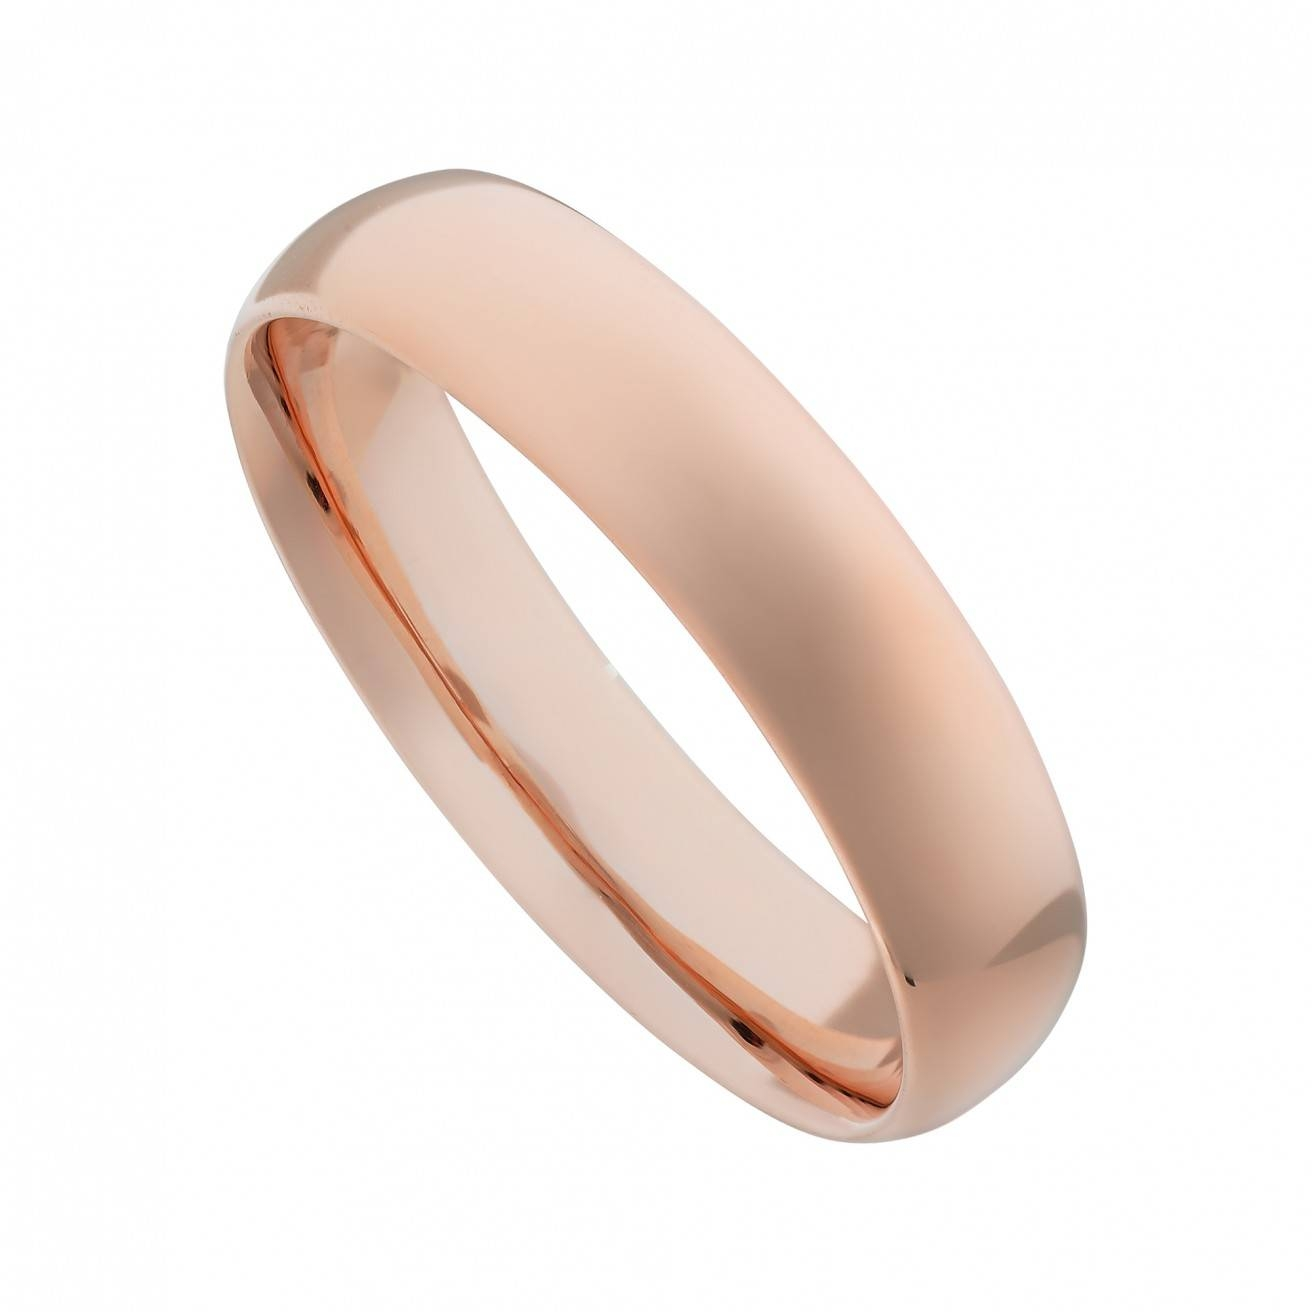 Buy Men's Wedding Rings Online – Fraser Hart Pertaining To Male Rose Gold Wedding Bands (View 5 of 15)